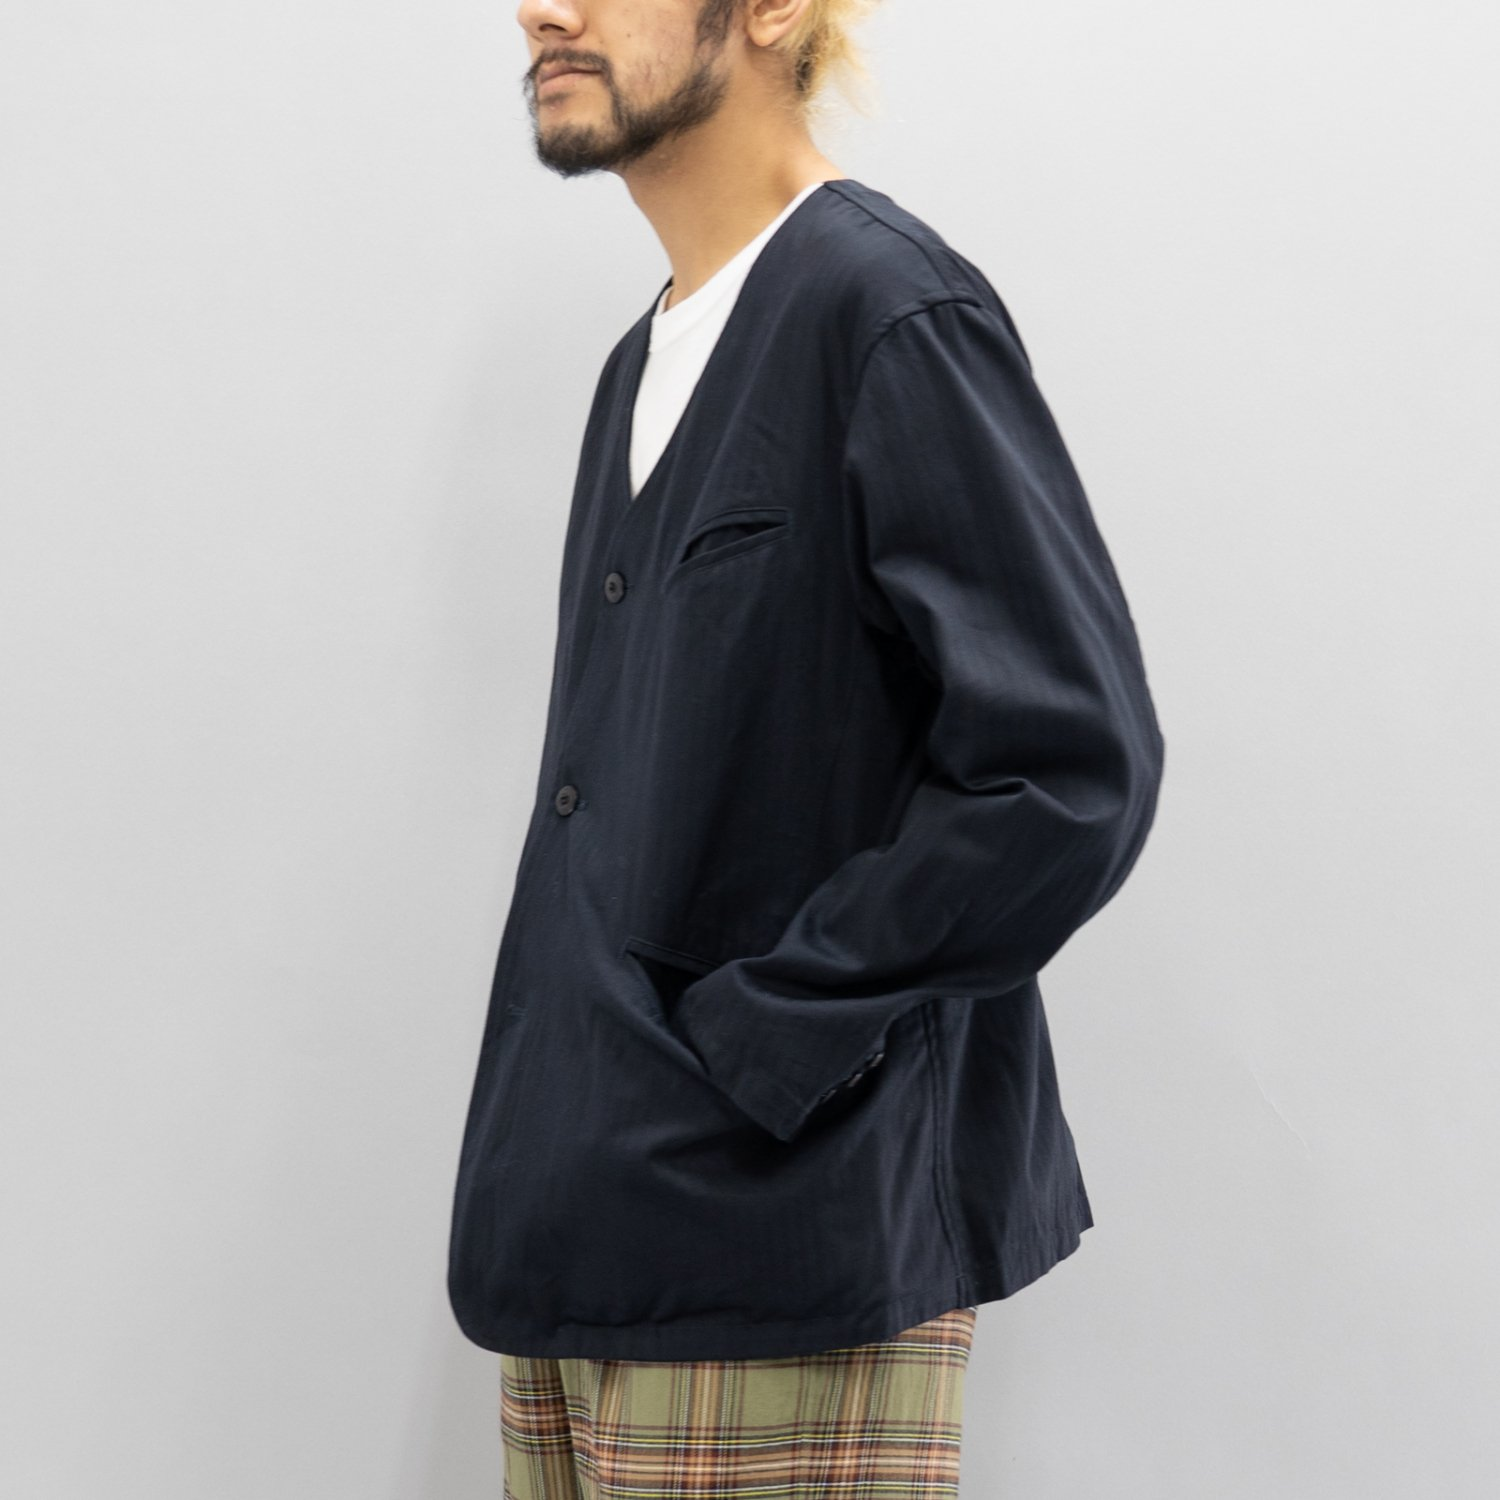 ts(s) * Supima Cotton Herringbone Cloth Collarless Jacket * Navy